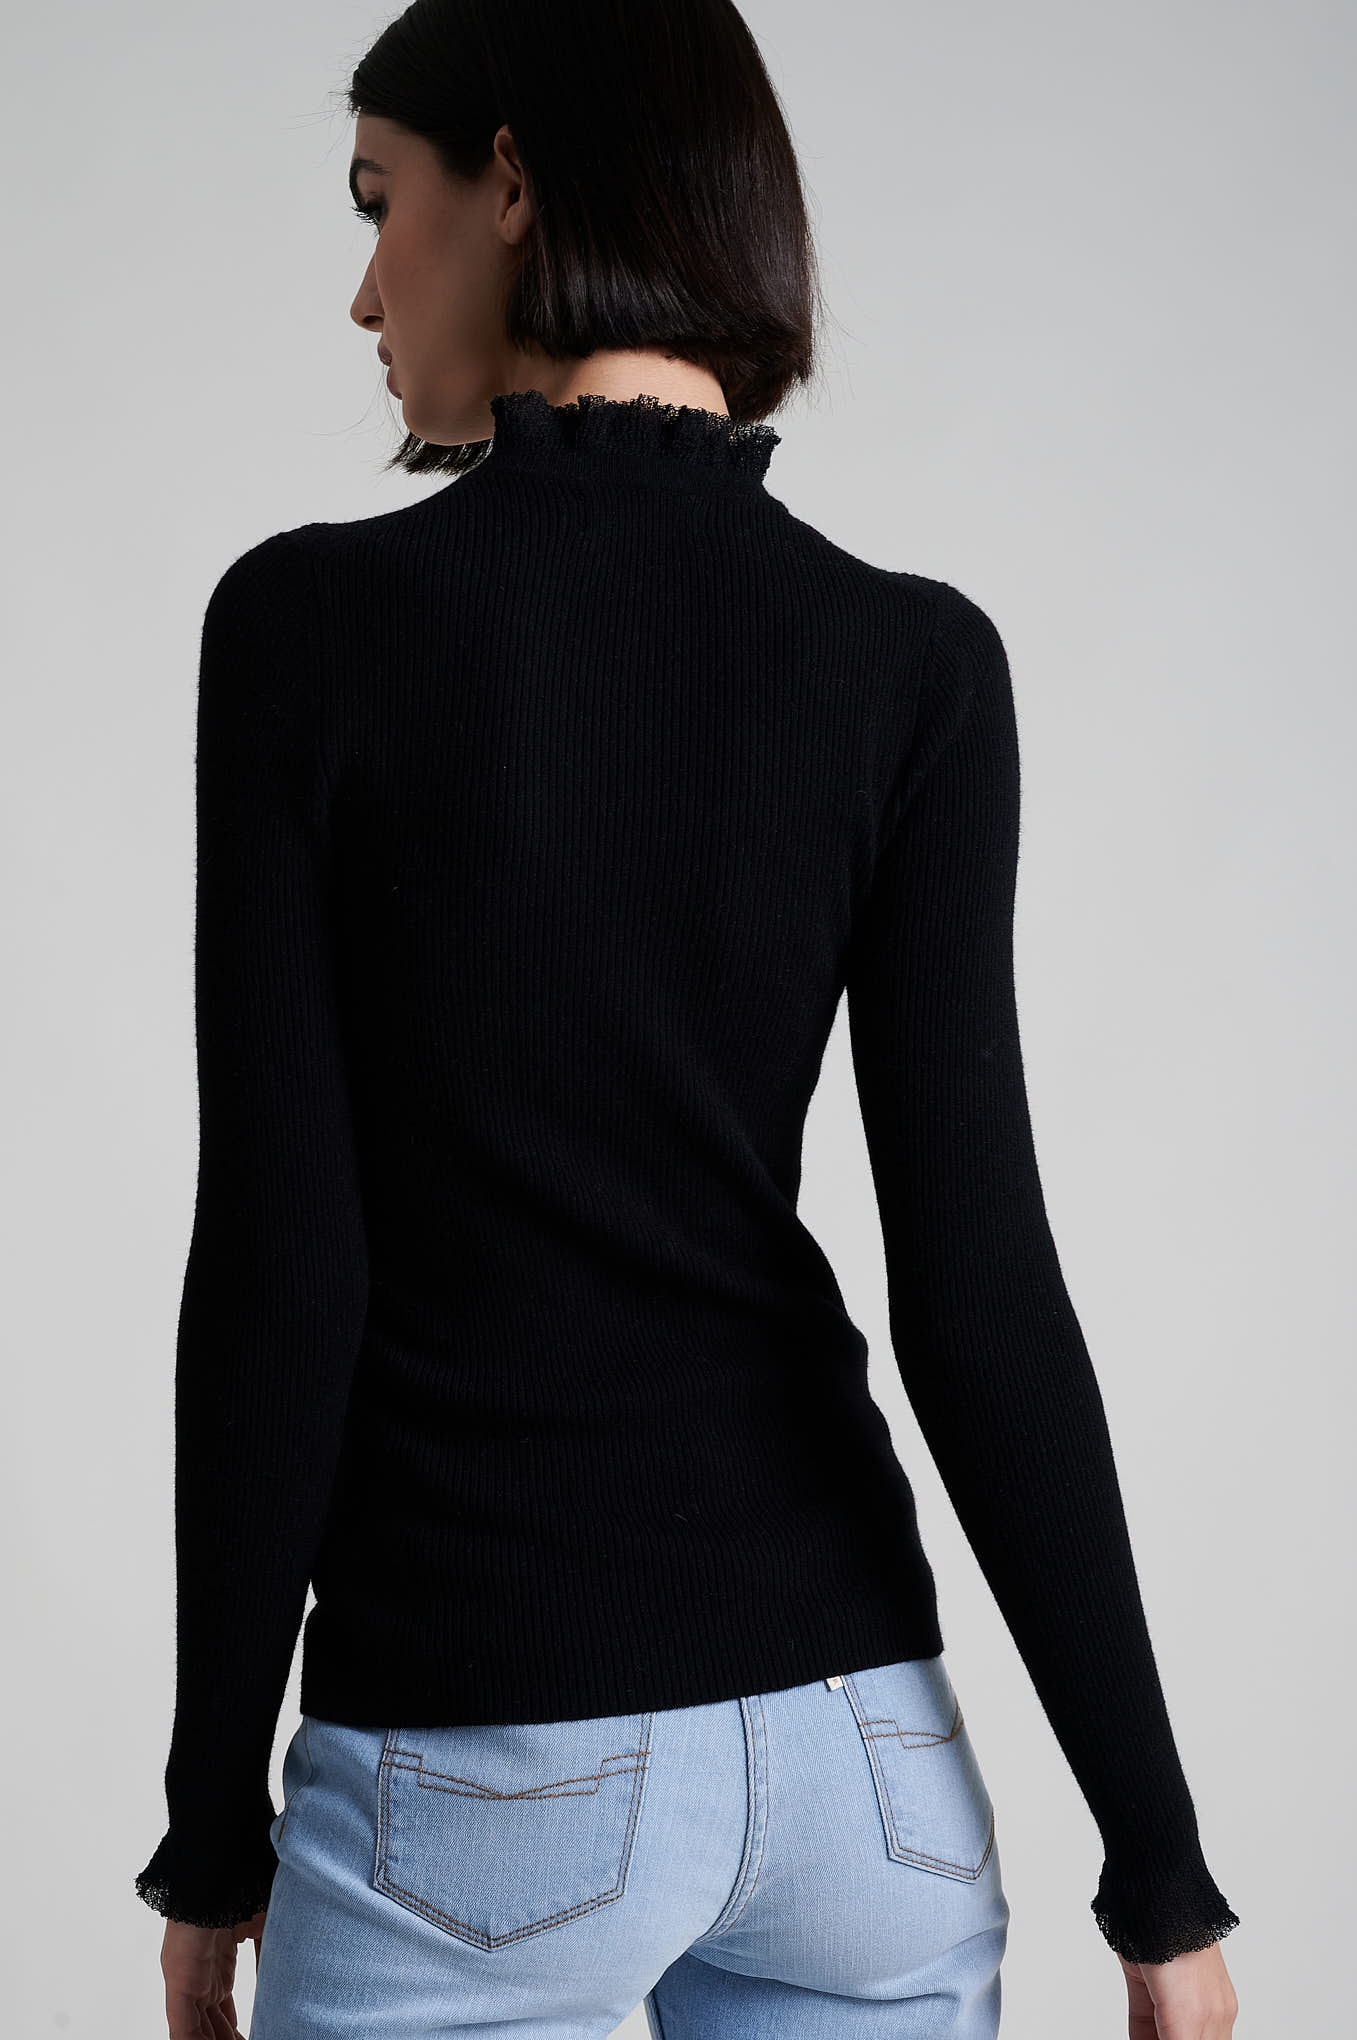 Sweater Black Casual Woman